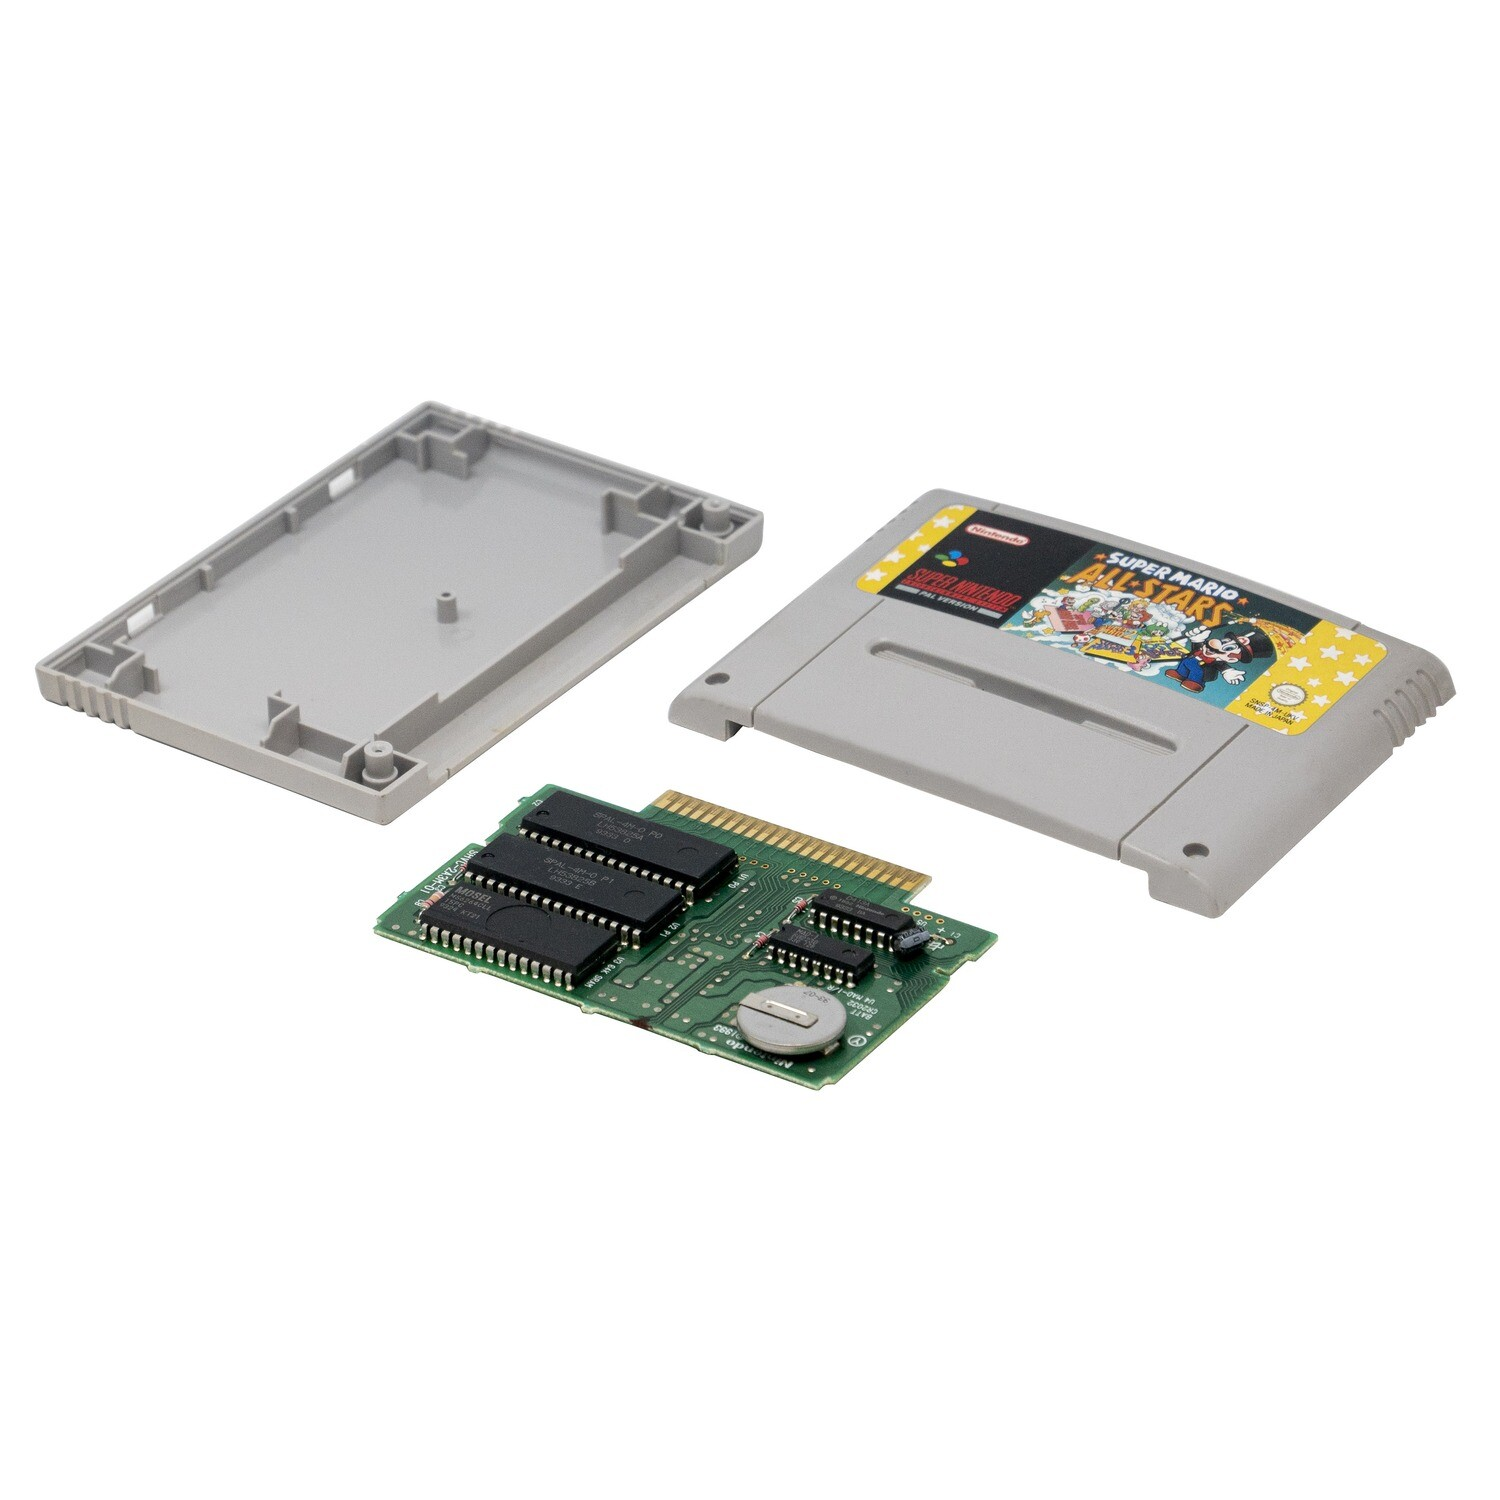 SNES Games Battery Replacement: Send In Service (UK Only)